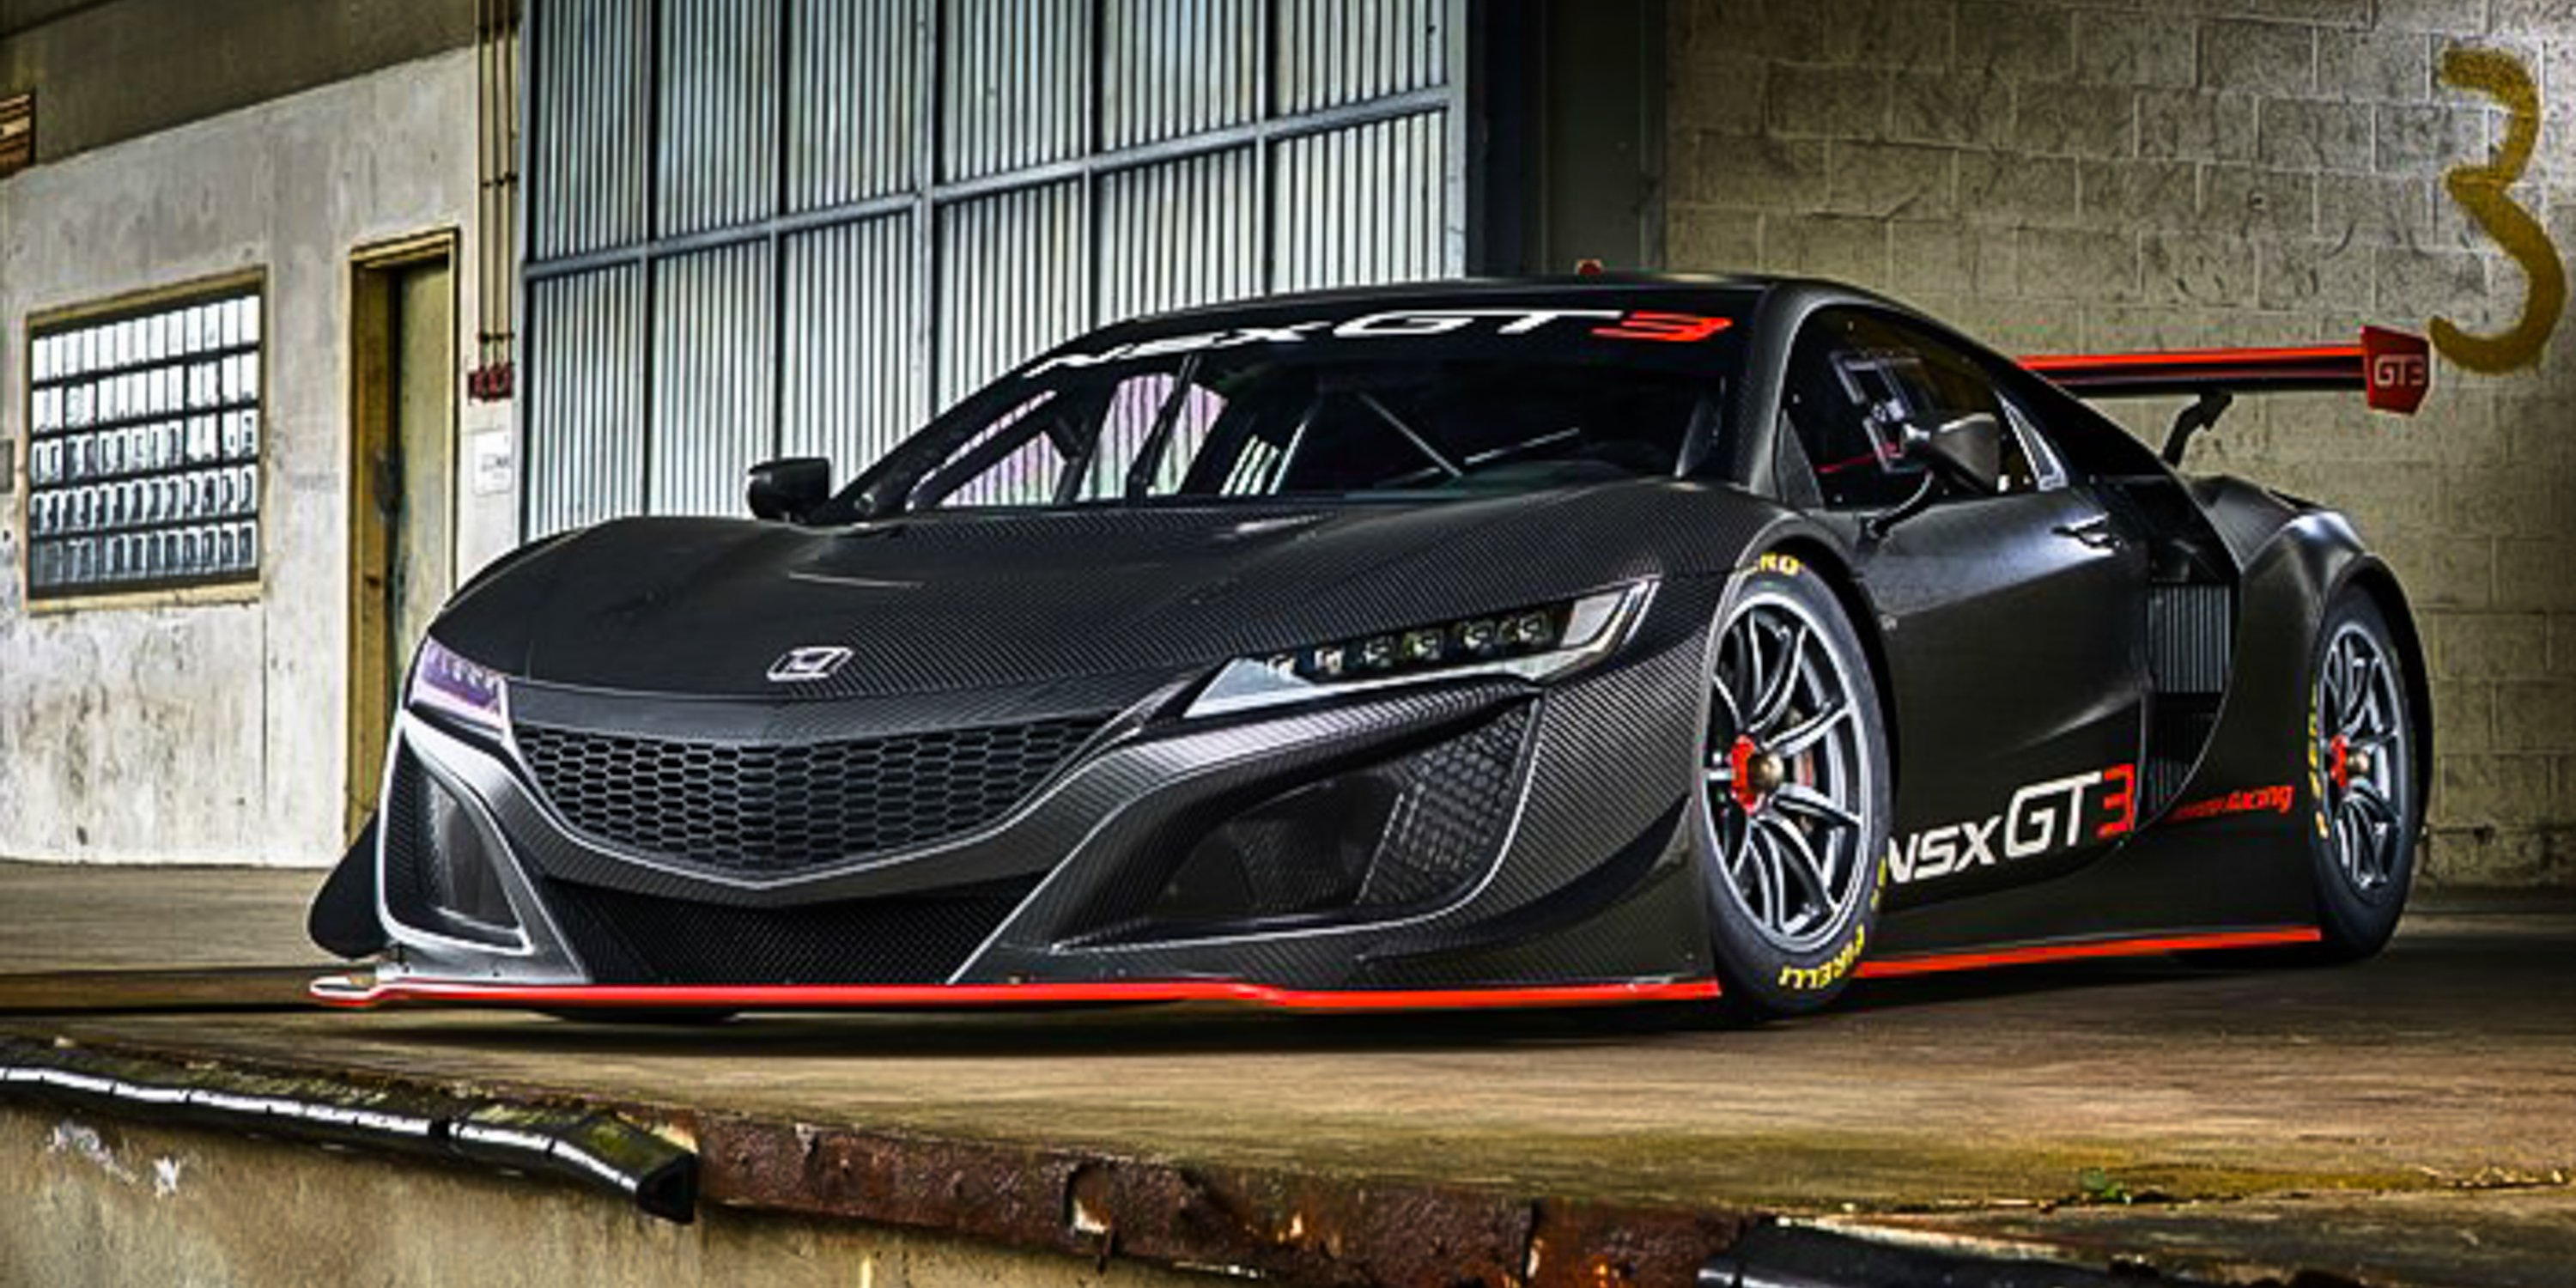 Honda Nsx Gt3 Racer Readying For Global Assault